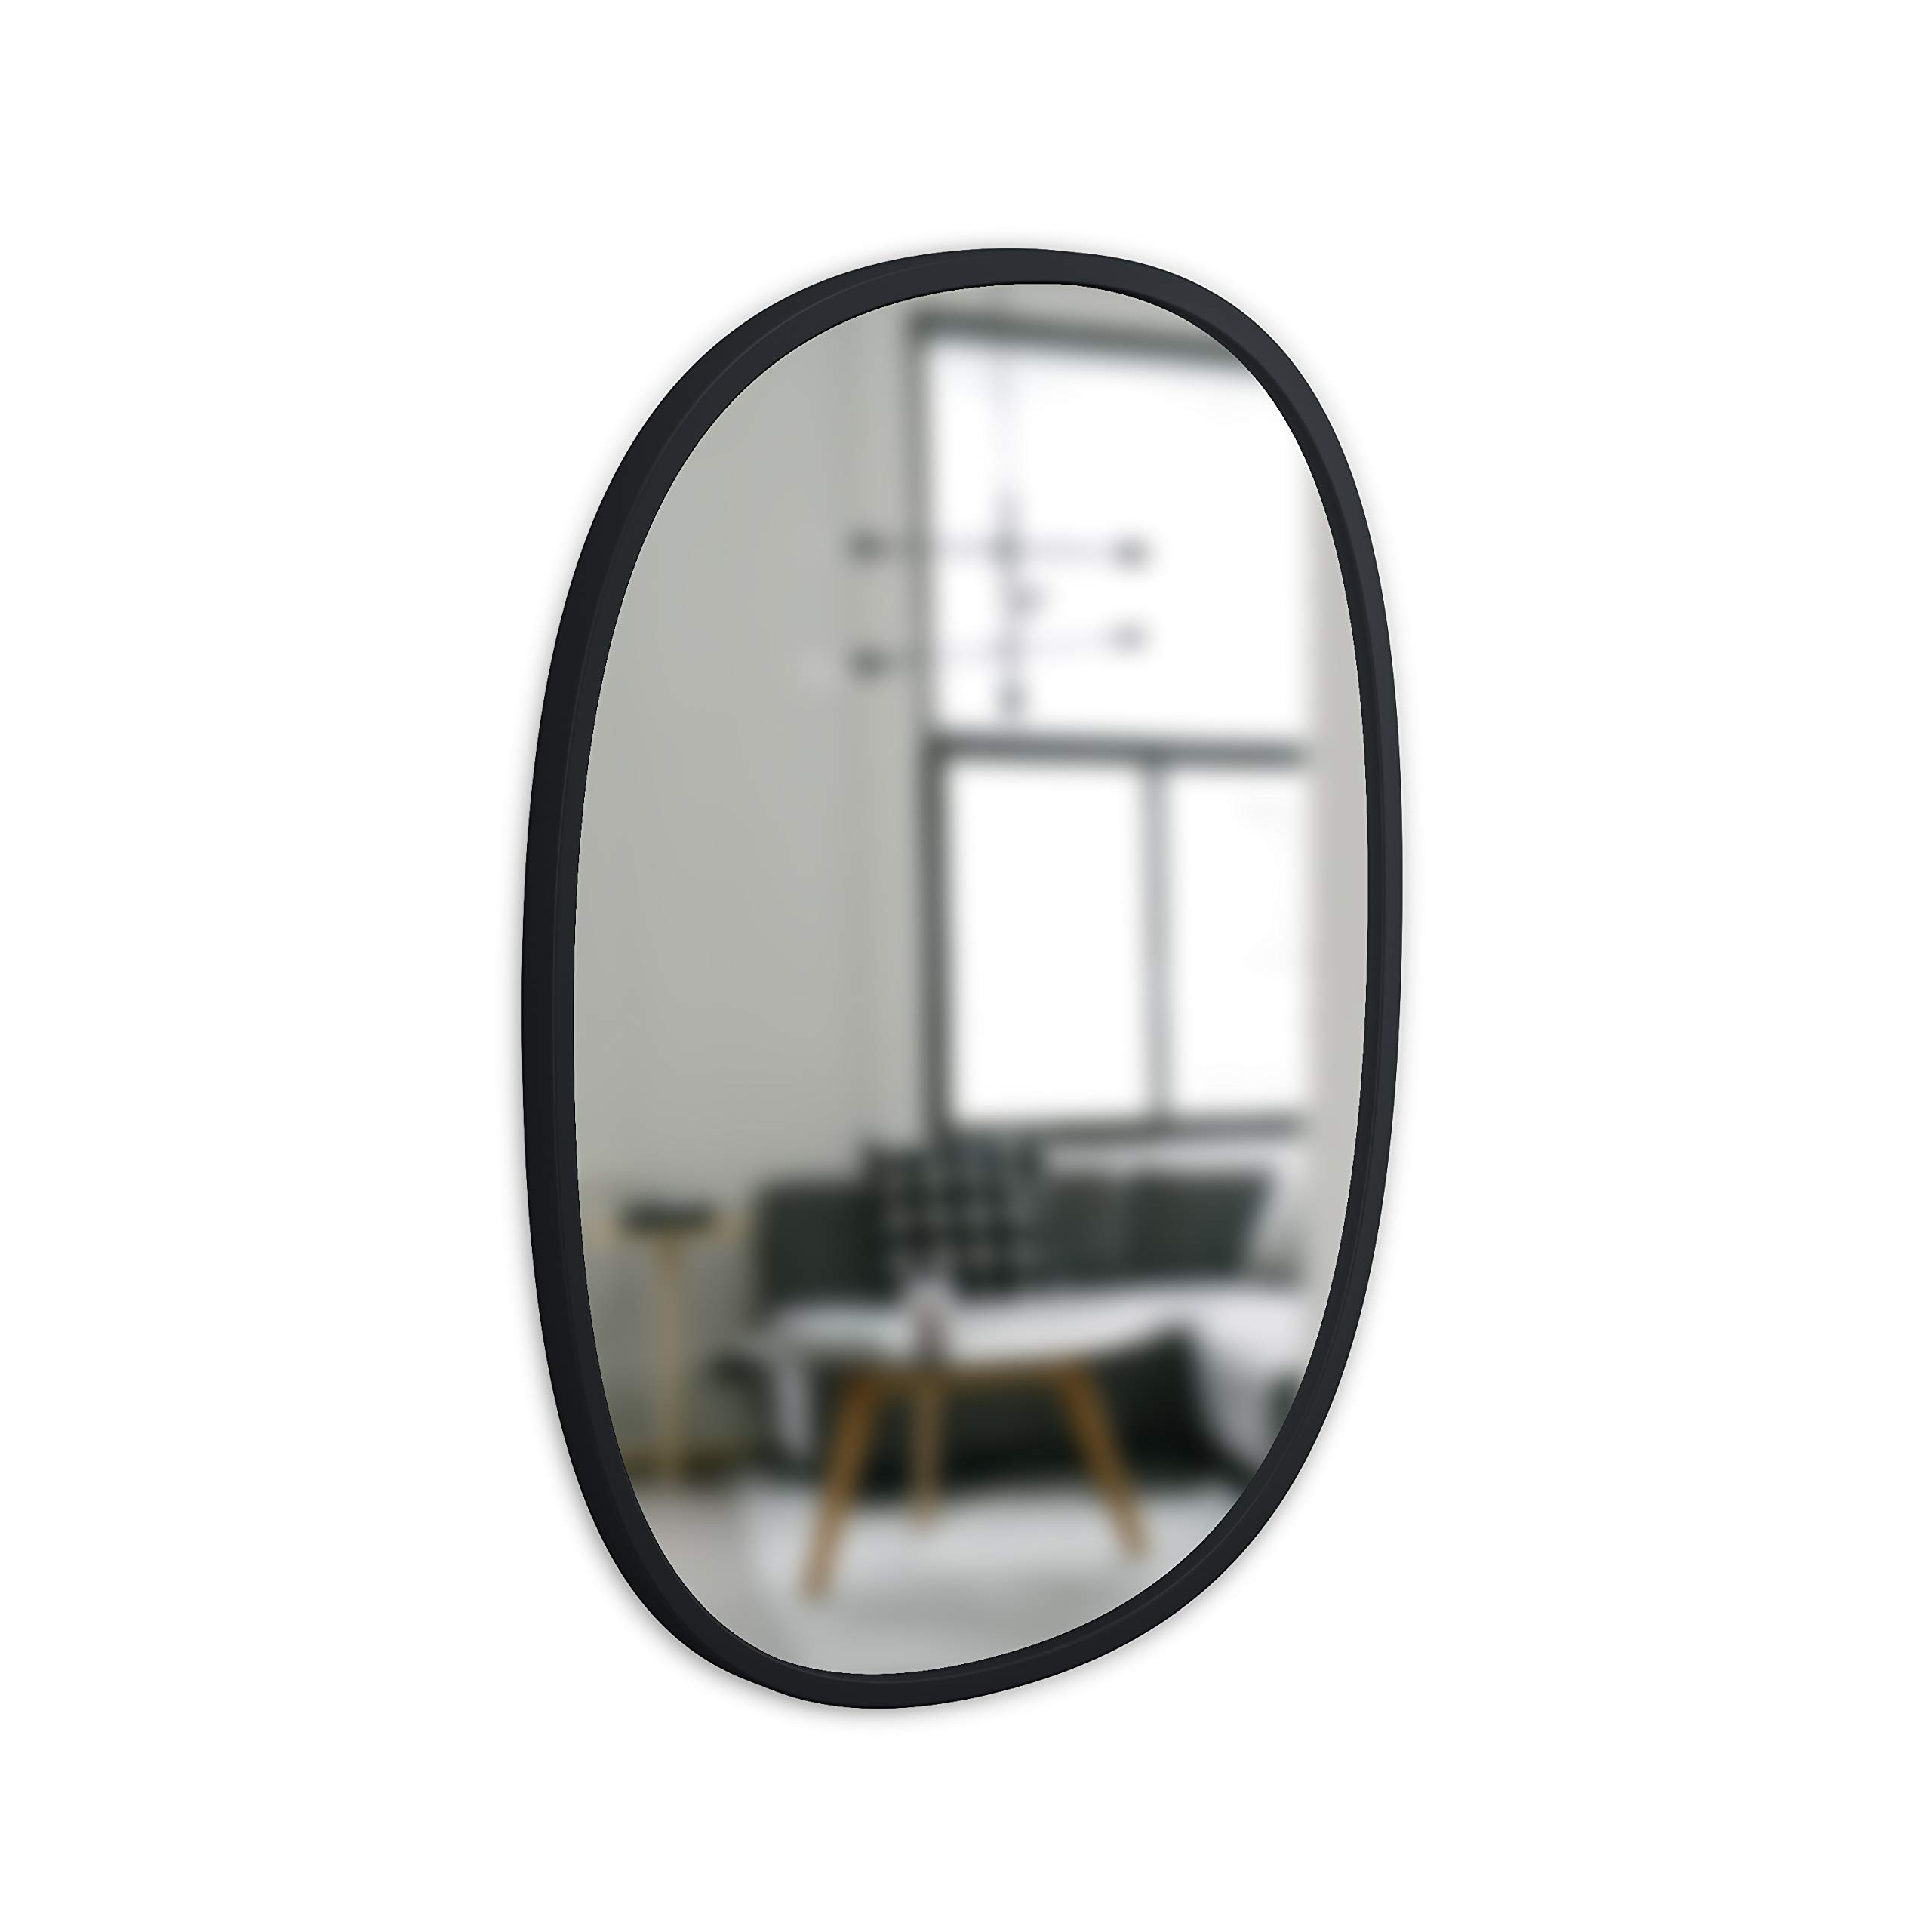 Umbra, Black Hub Oval, 18x24 Inch Decorative Hanging Protective Rubber Frame, Wall Mirror for Entryways, Washrooms, Living Room, 18 x 24-Inch by Umbra